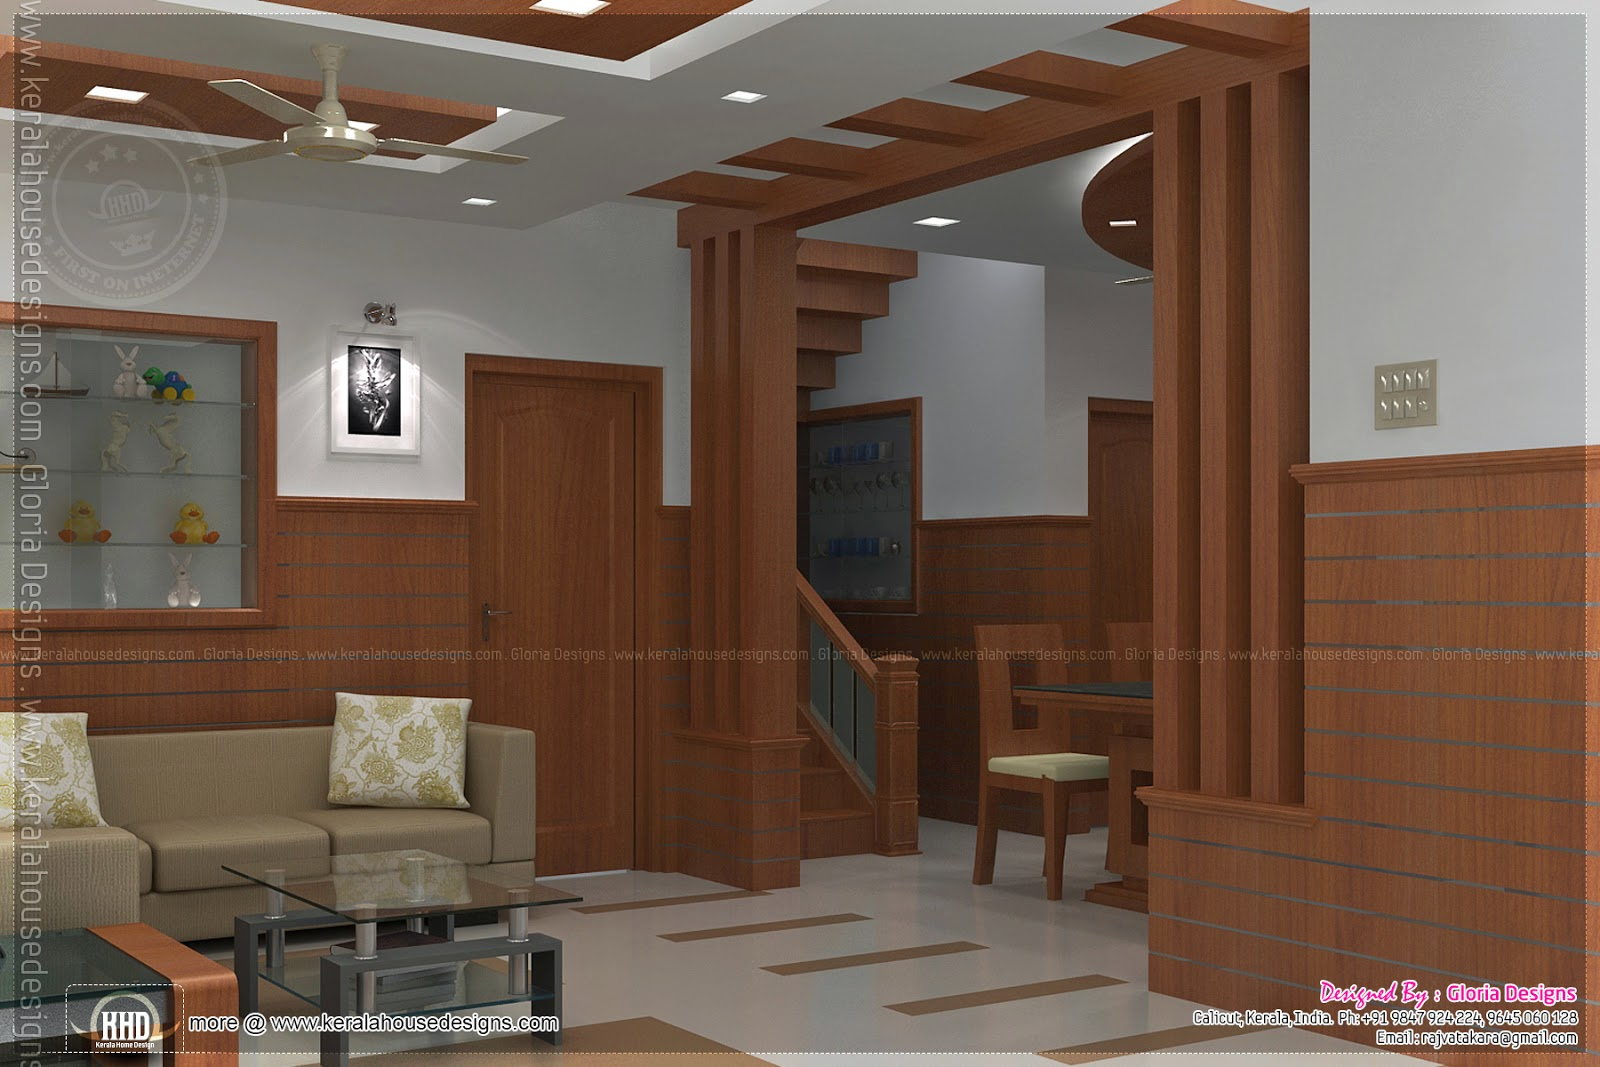 Home interior designs by gloria designs calicut kerala for Kerala interior designs